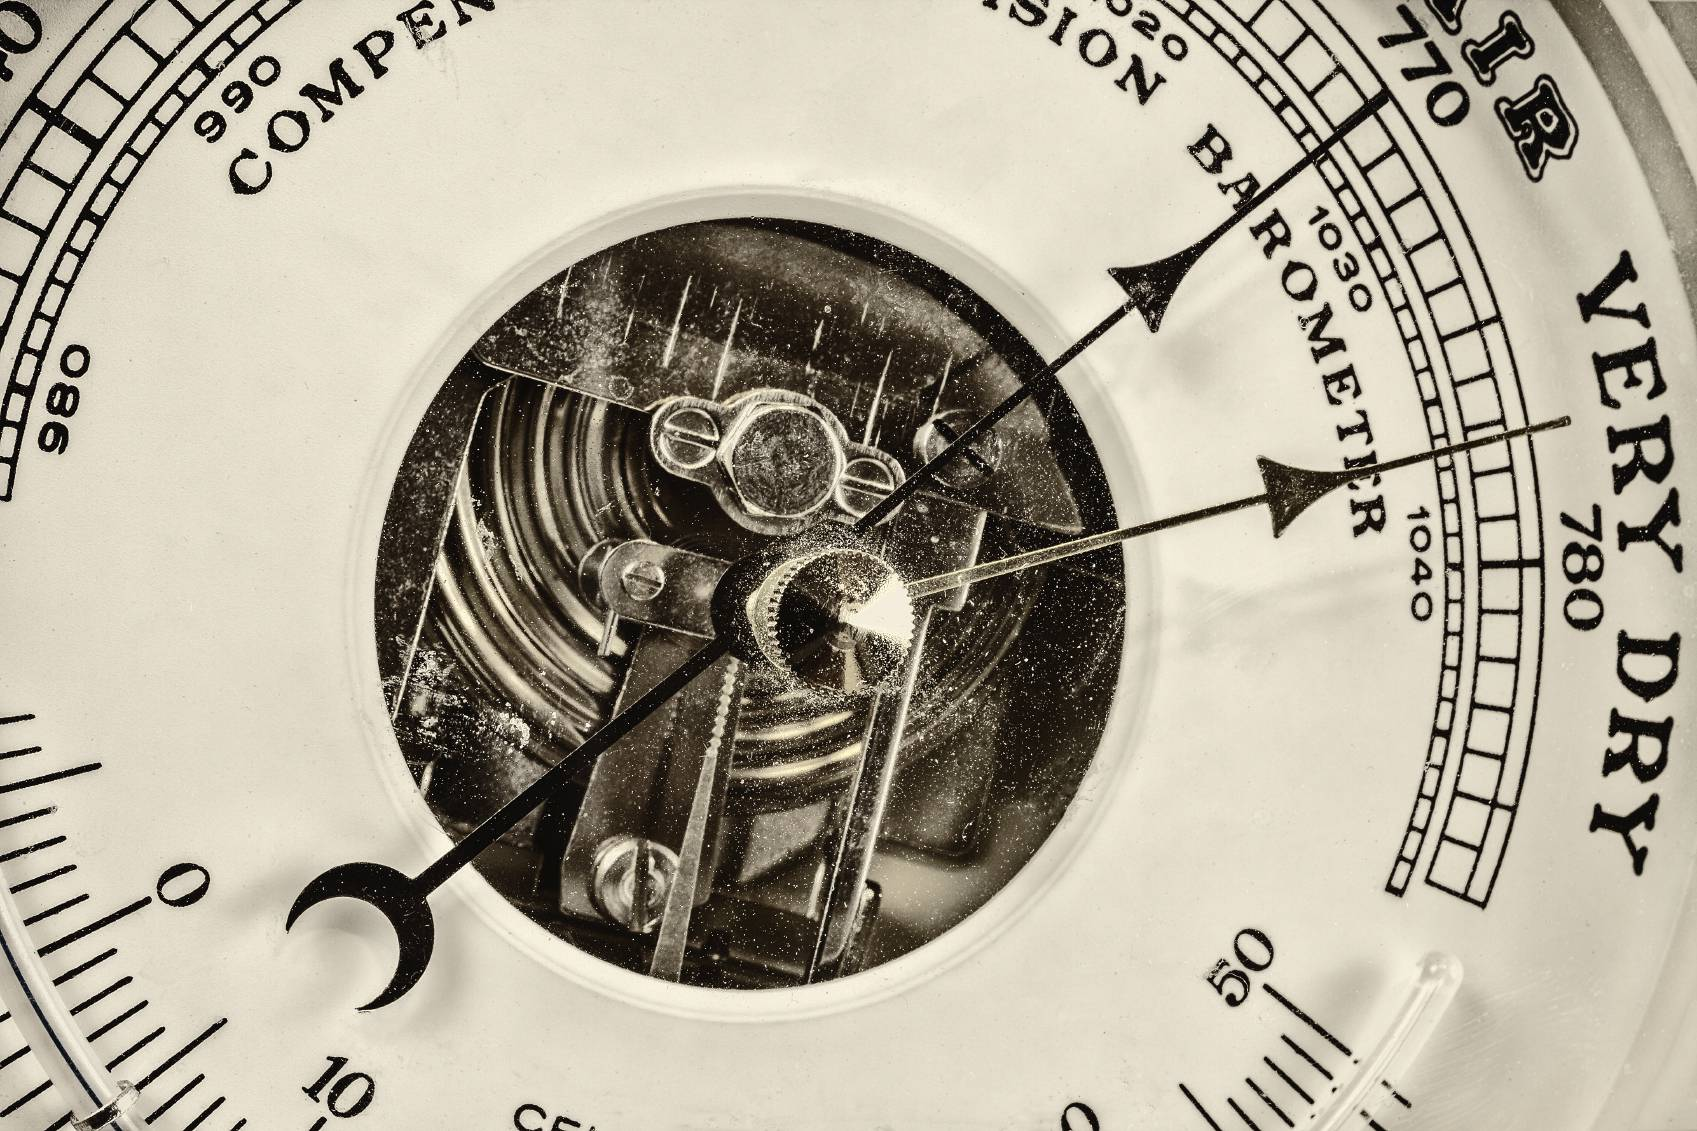 Retro styled close up image of an old barometer